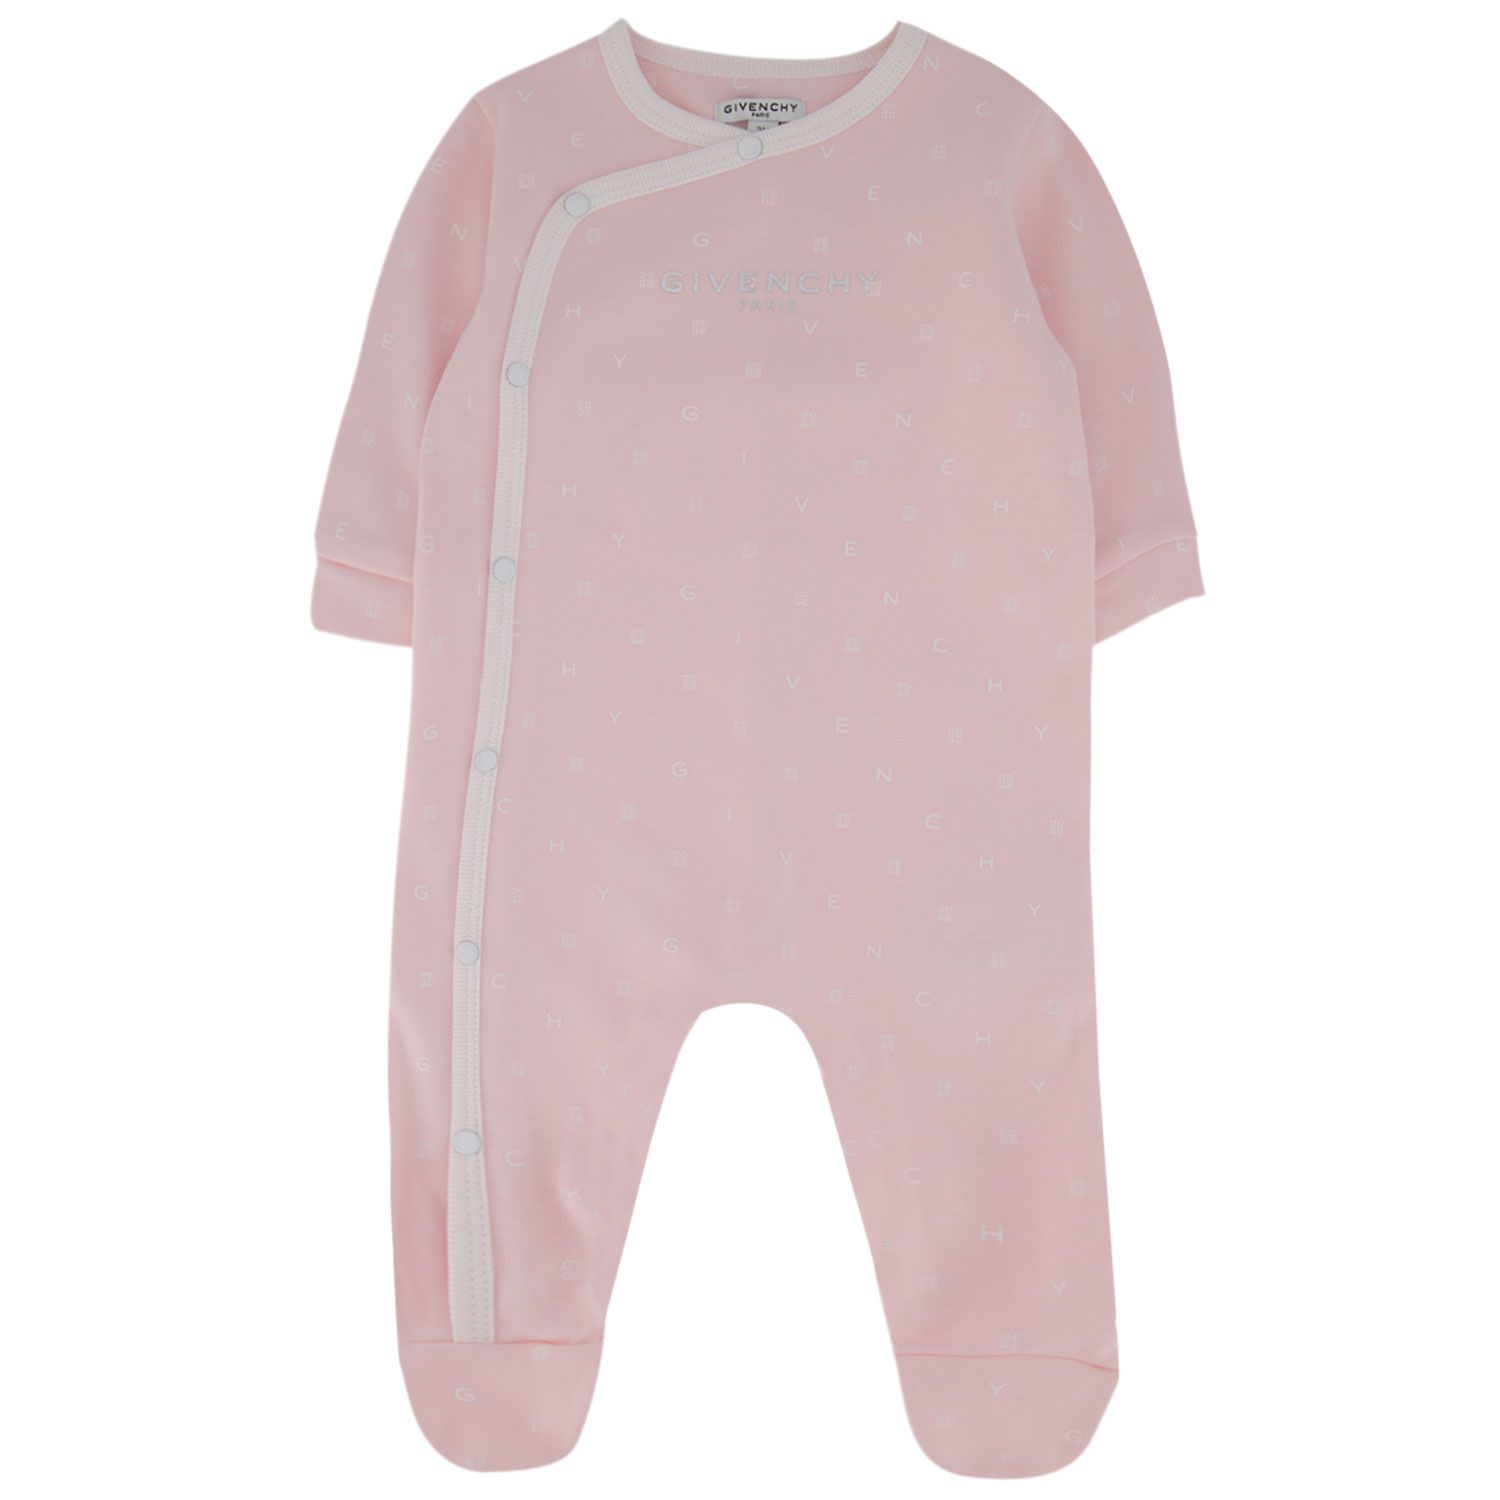 Picture of Givenchy H97059 baby playsuit light pink